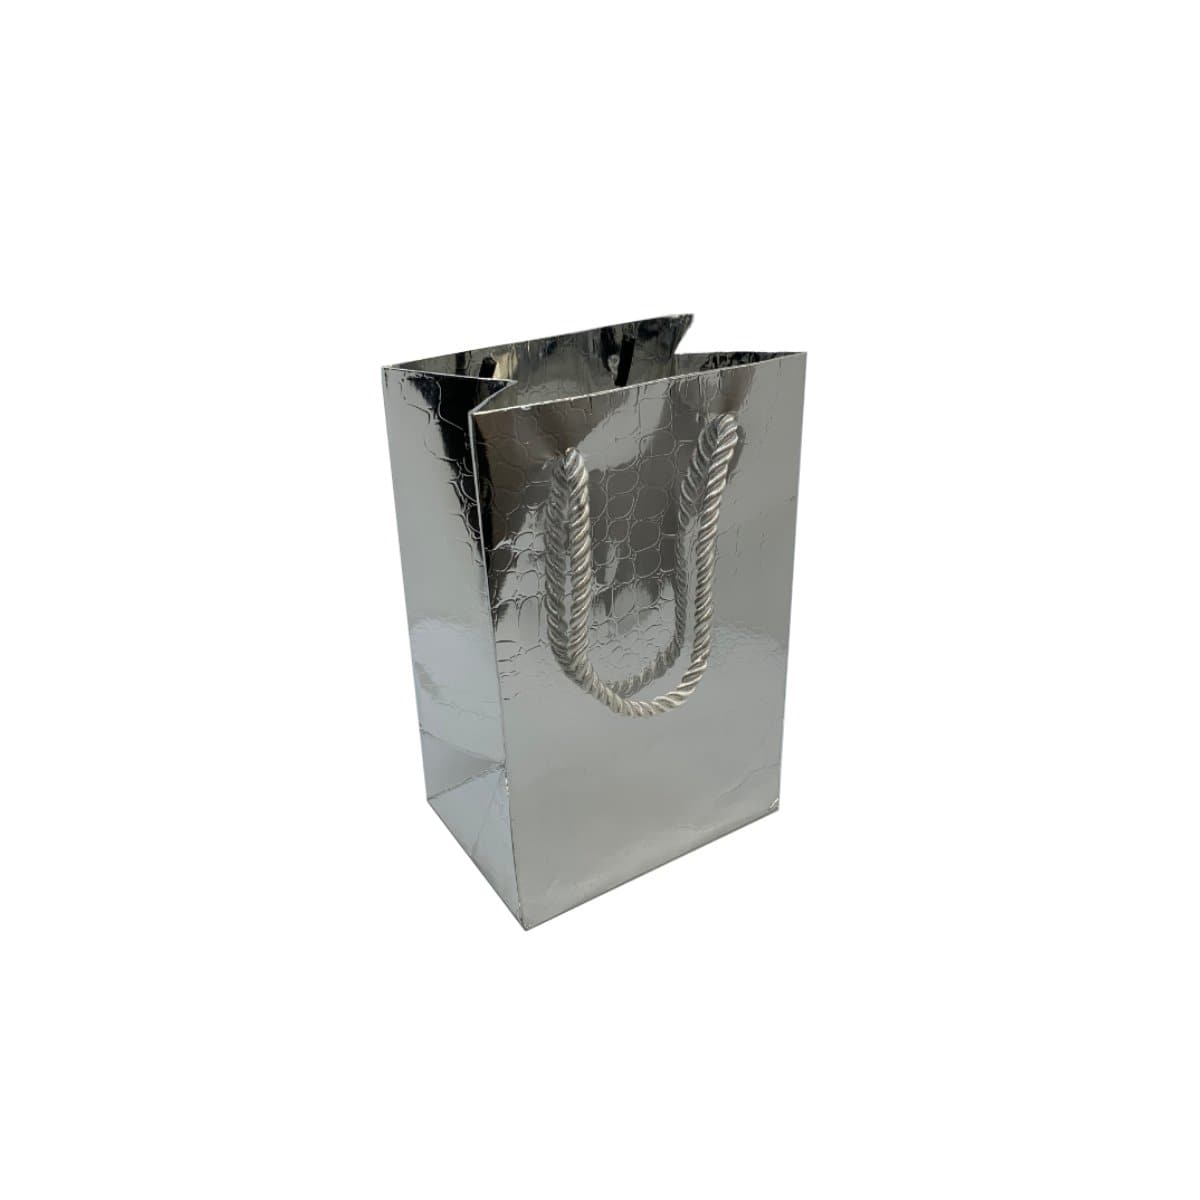 Paper Gift Bag, Small 12 x 16 x 8.5 cm, Croco Glossy, Silver